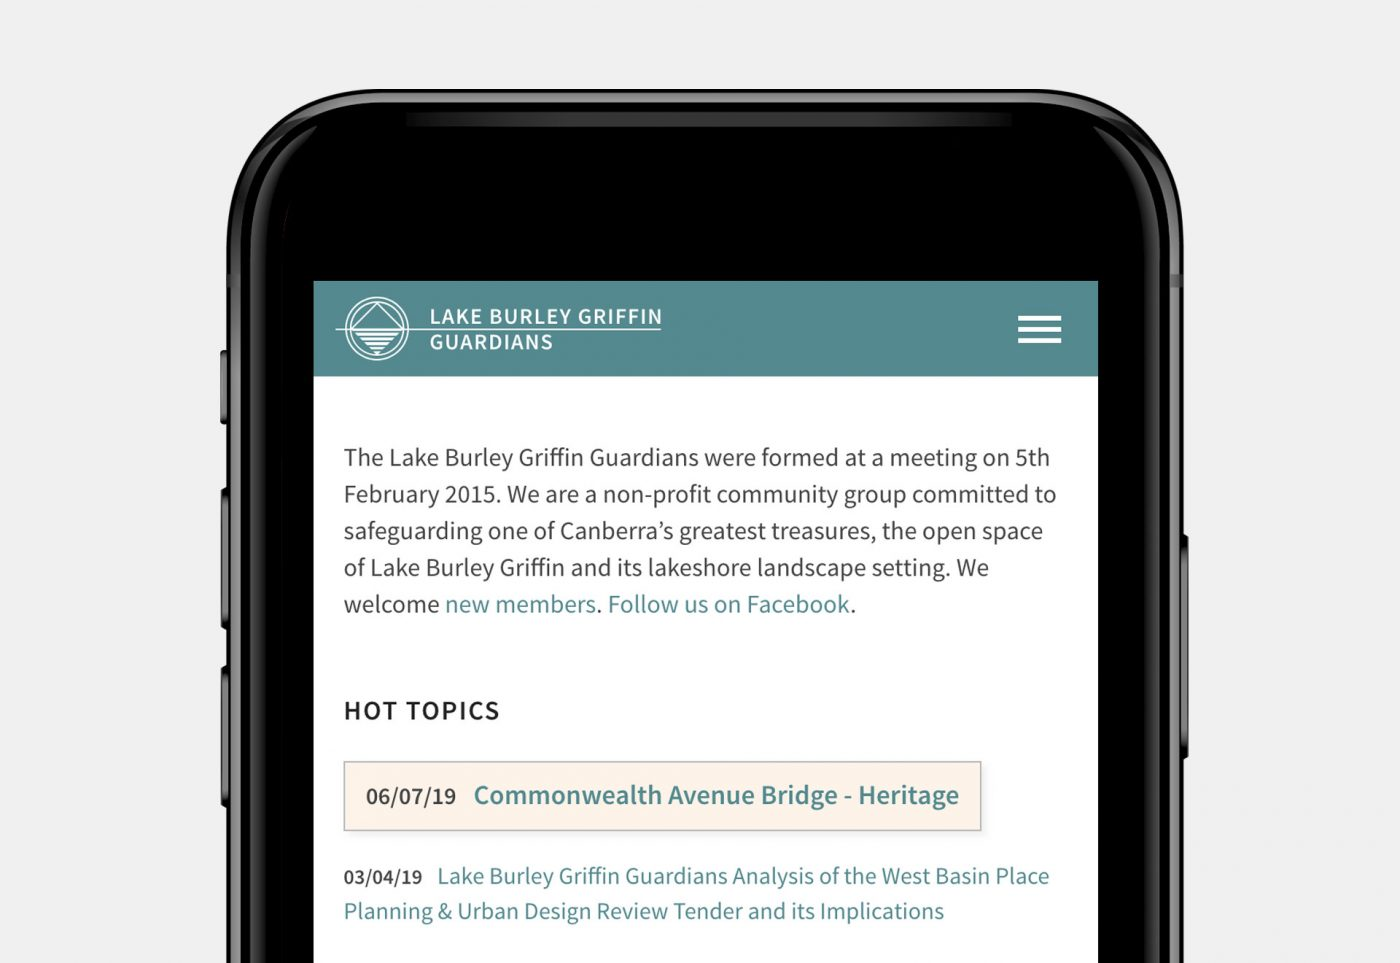 web design for Lake Burley Griffin Guardians mobile view article page